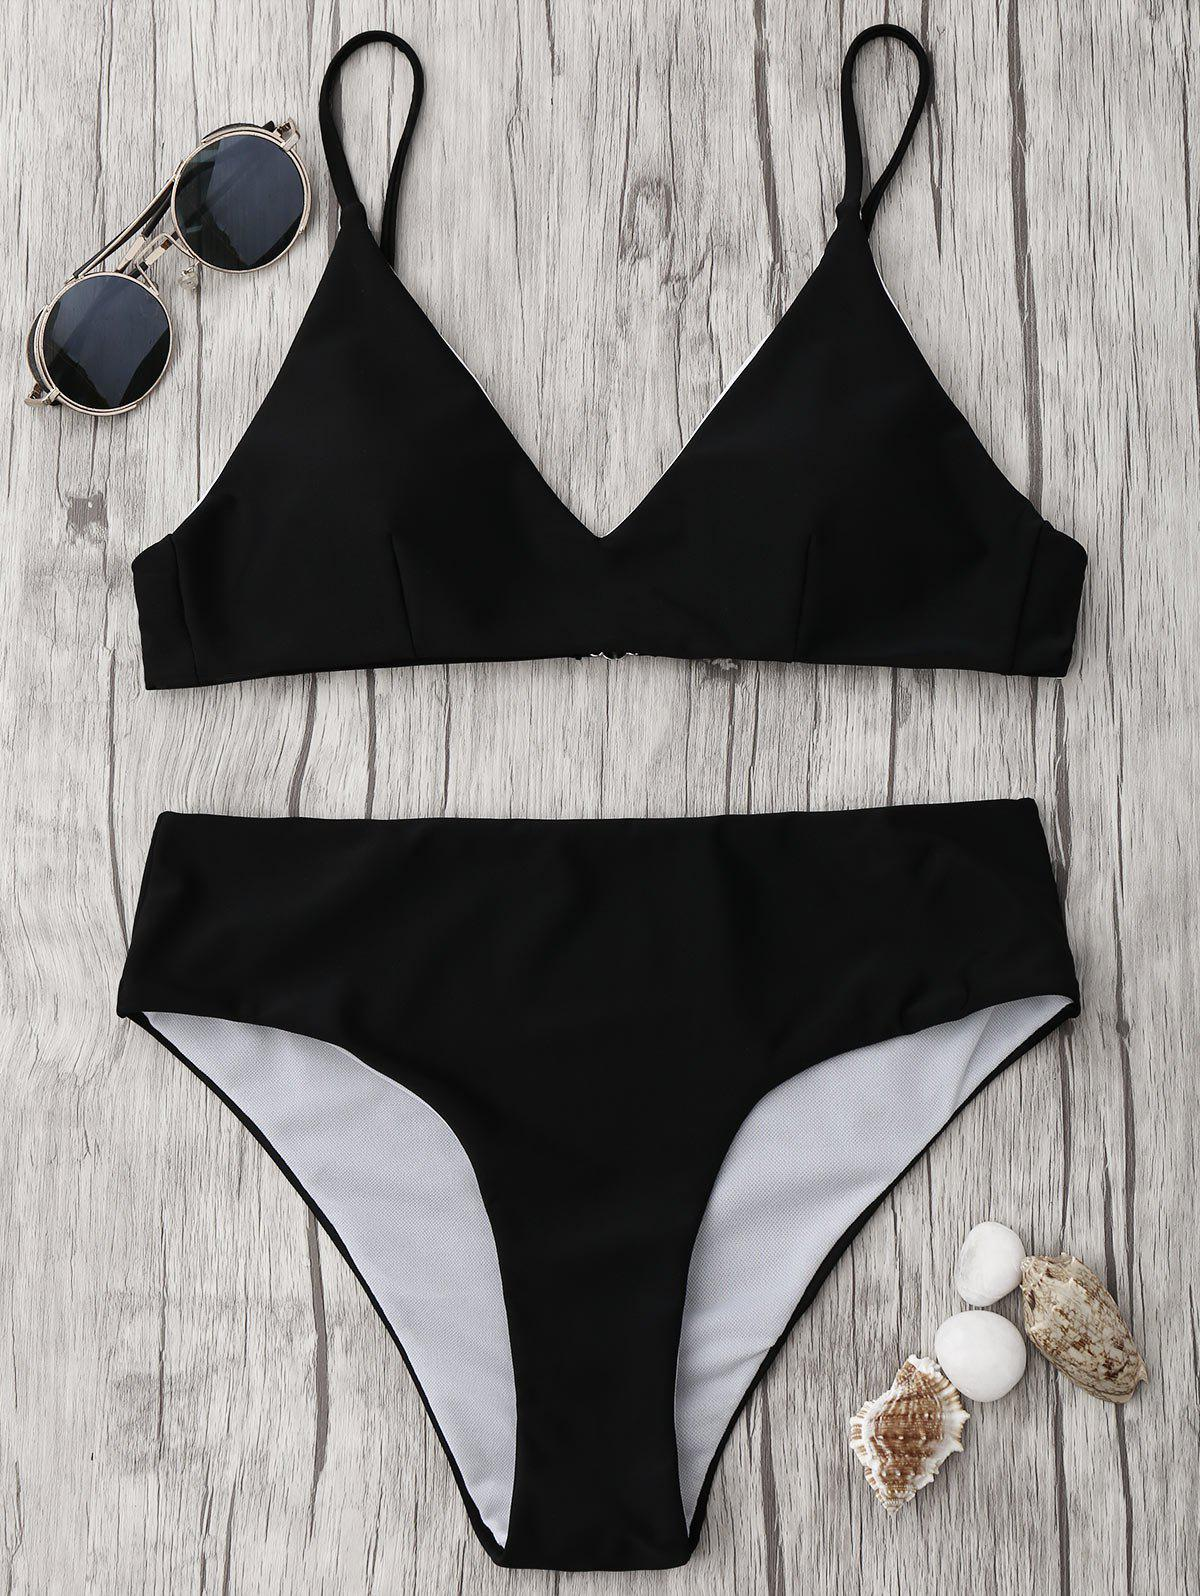 Shop Spaghetti Strap High Waisted Bikini Set